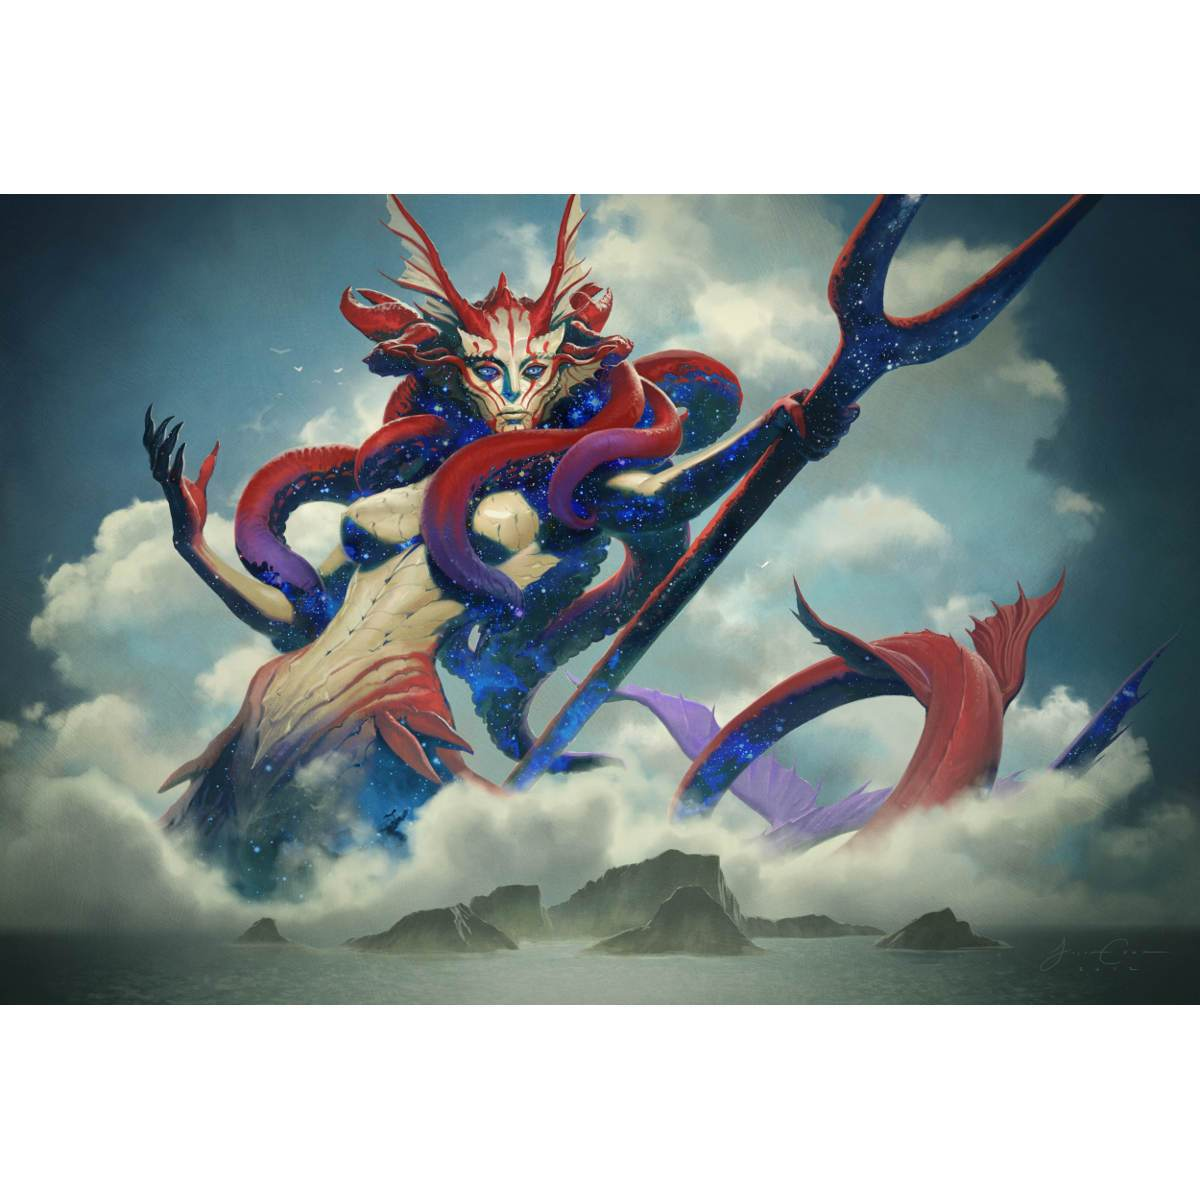 Thassa, God of the Sea Print - Print - Original Magic Art - Accessories for Magic the Gathering and other card games